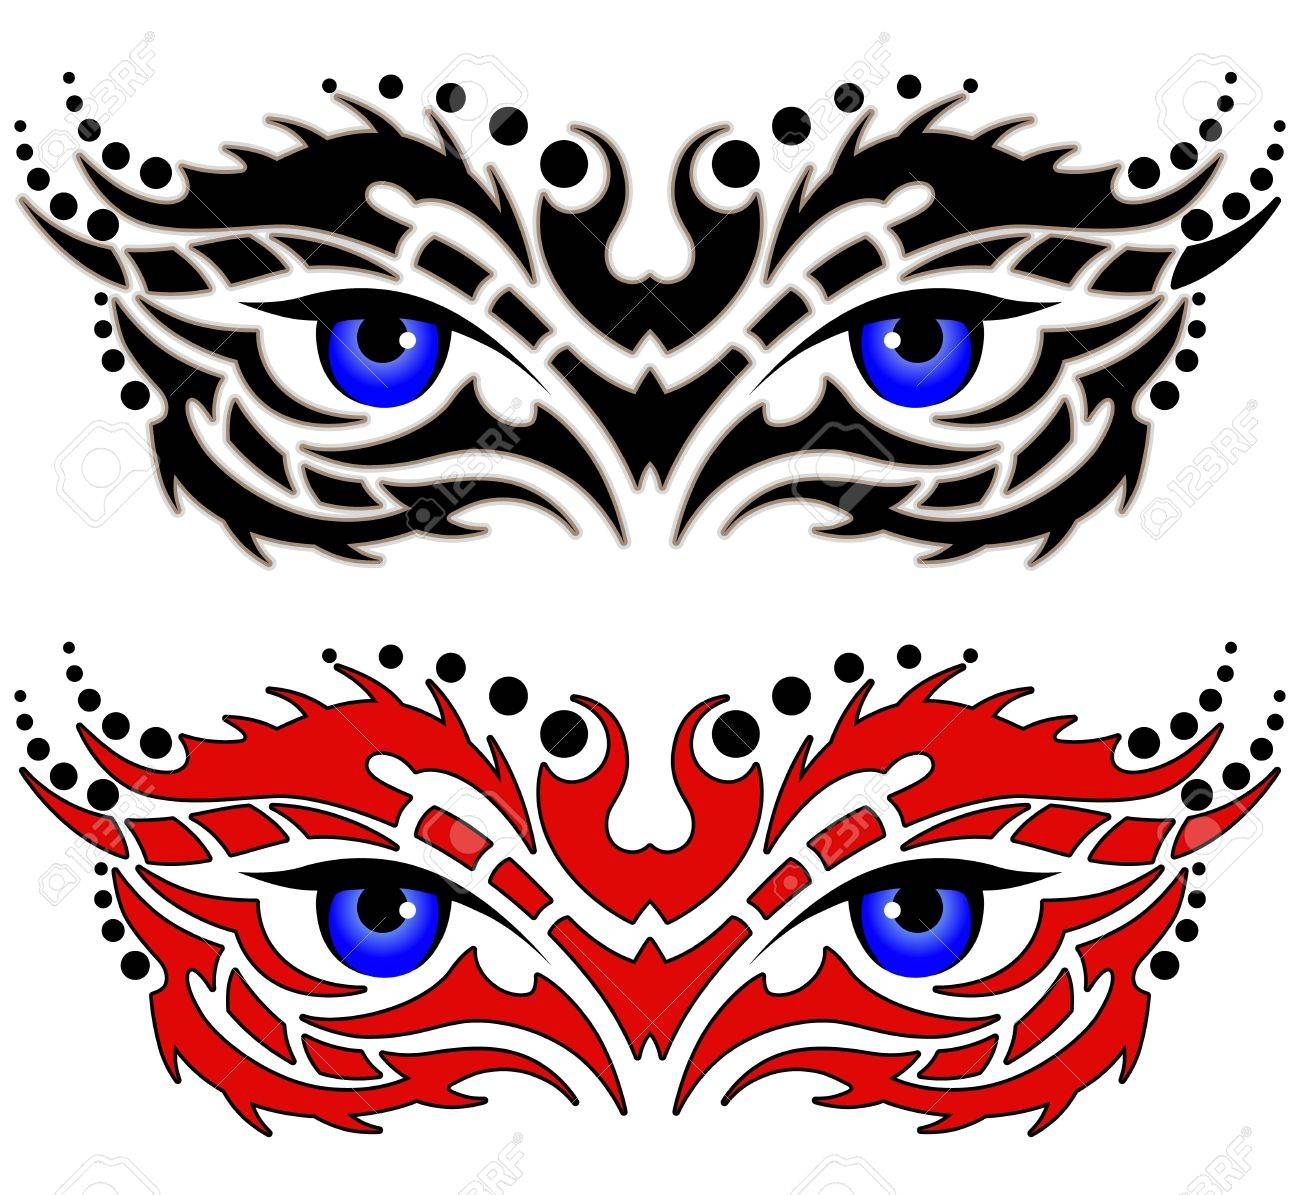 88022836a71e7 Eyes, Tribal Tattoo Royalty Free Cliparts, Vectors, And Stock ...